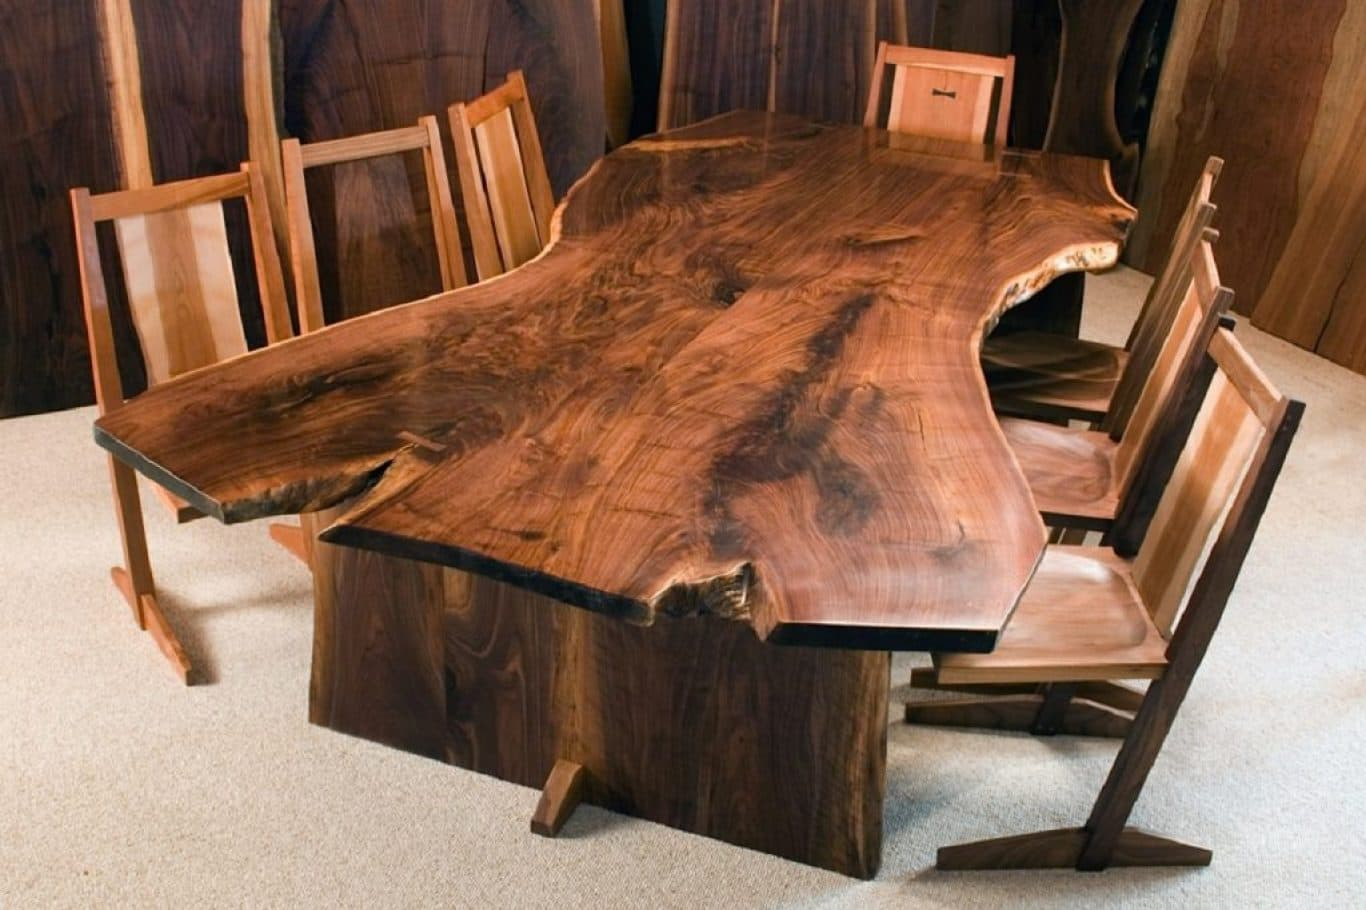 Custom Wood Furniture Tables Desks Beds Chairs Counter